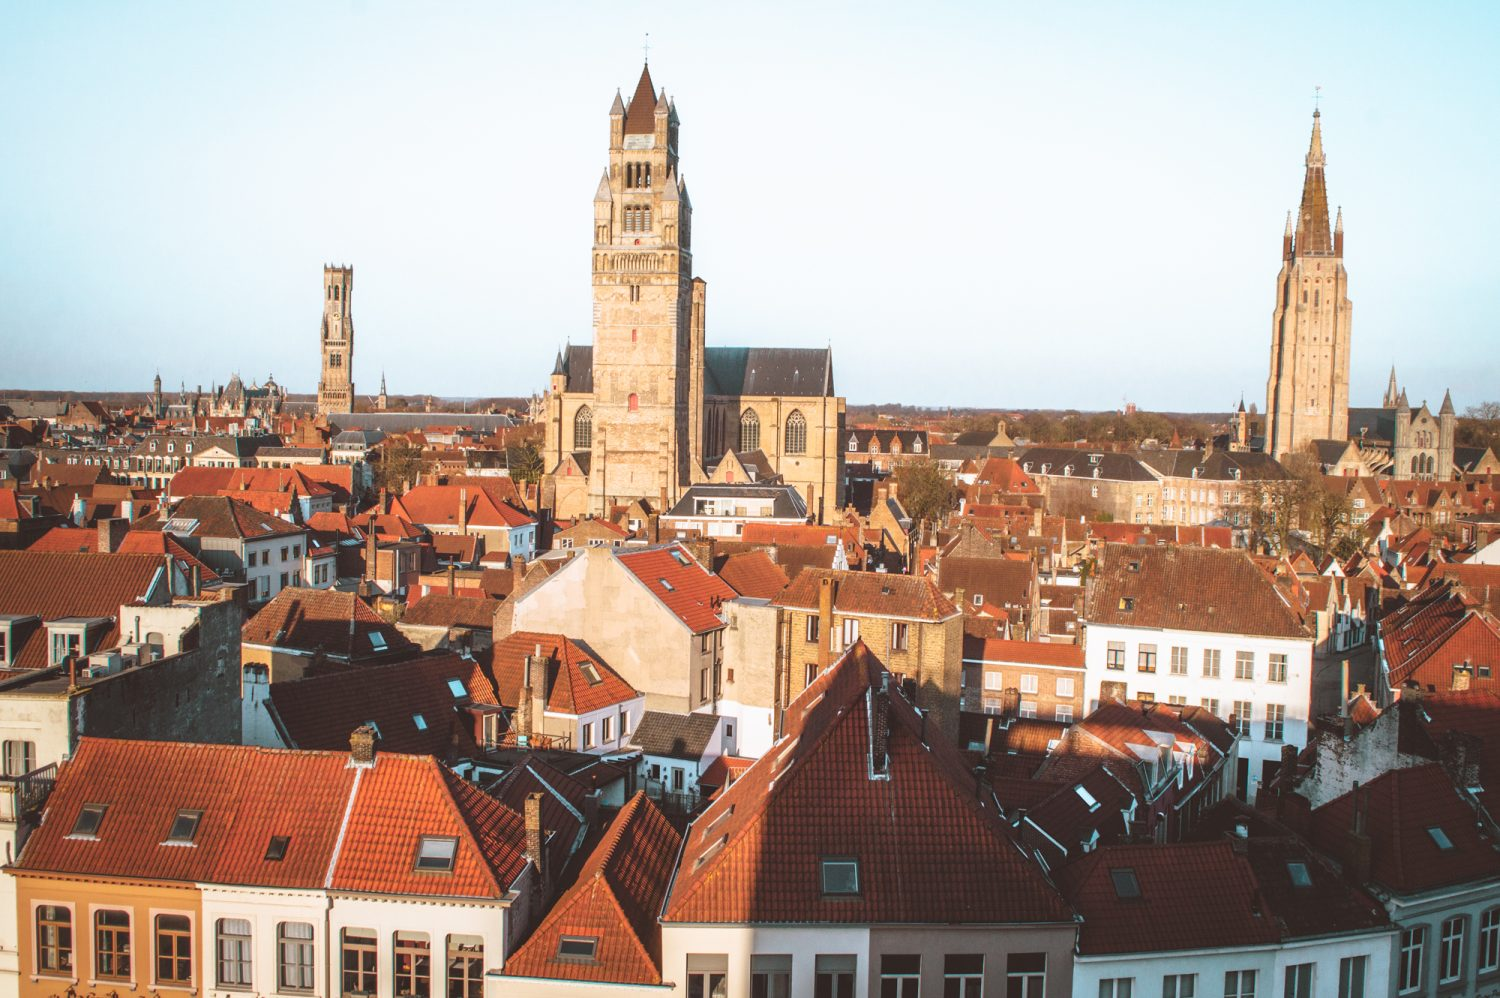 Amazing list of alternative things to do in Bruges! A must if you're looking for more offbeat sights in Bruges, Belgium. #Bruges #Belgium #Travel